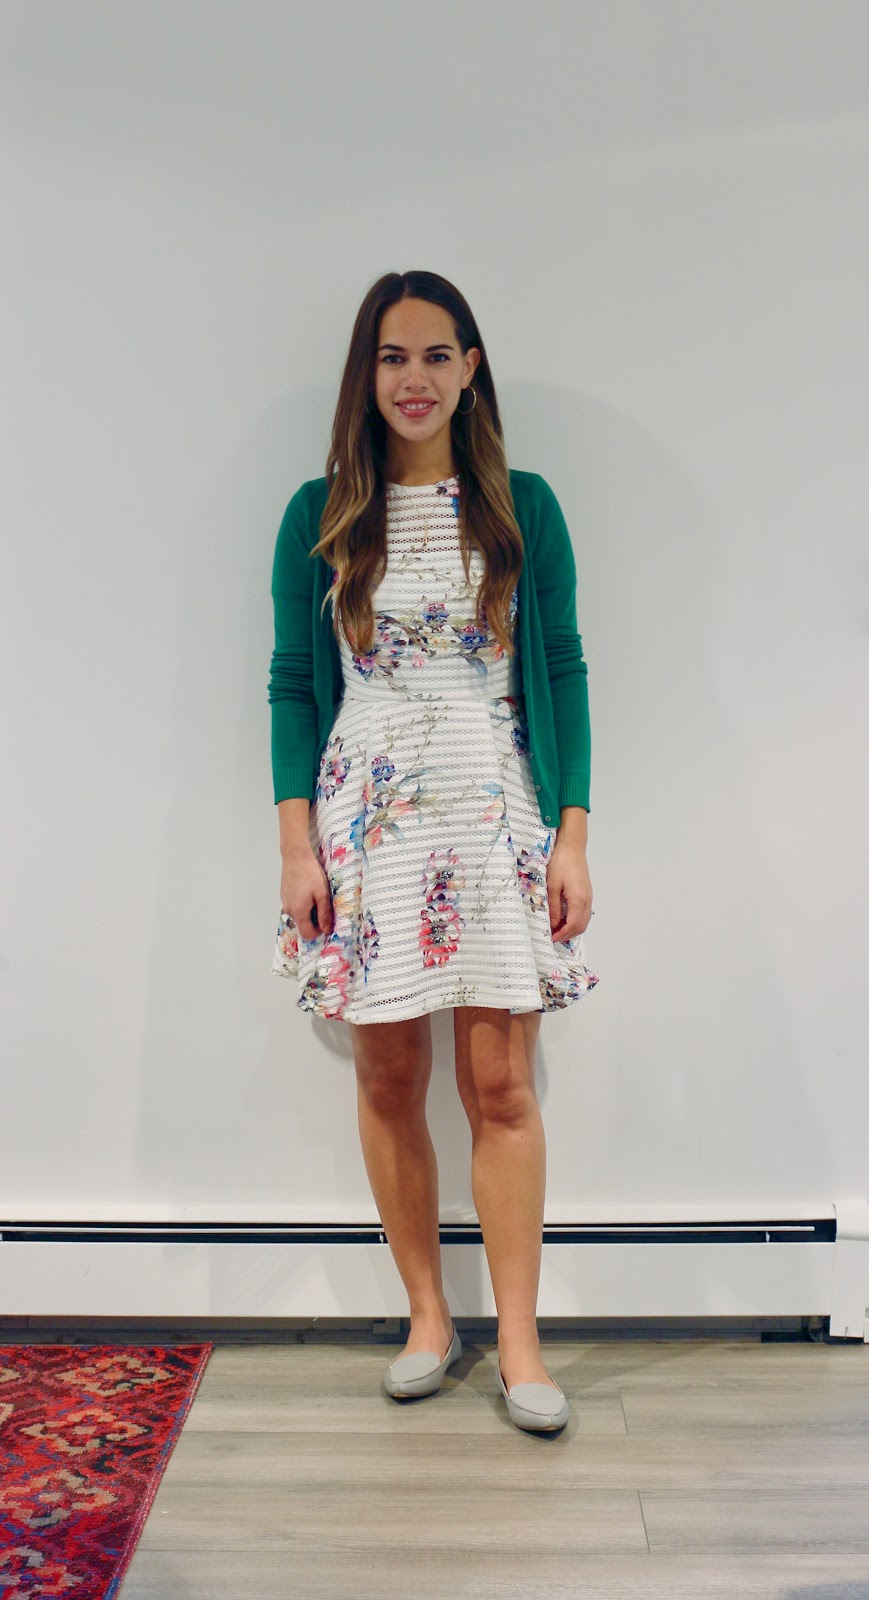 Jules in Flats - Floral Shadow Stripe Dress + Green Cardigan (Business Casual Workwear on a Budget)